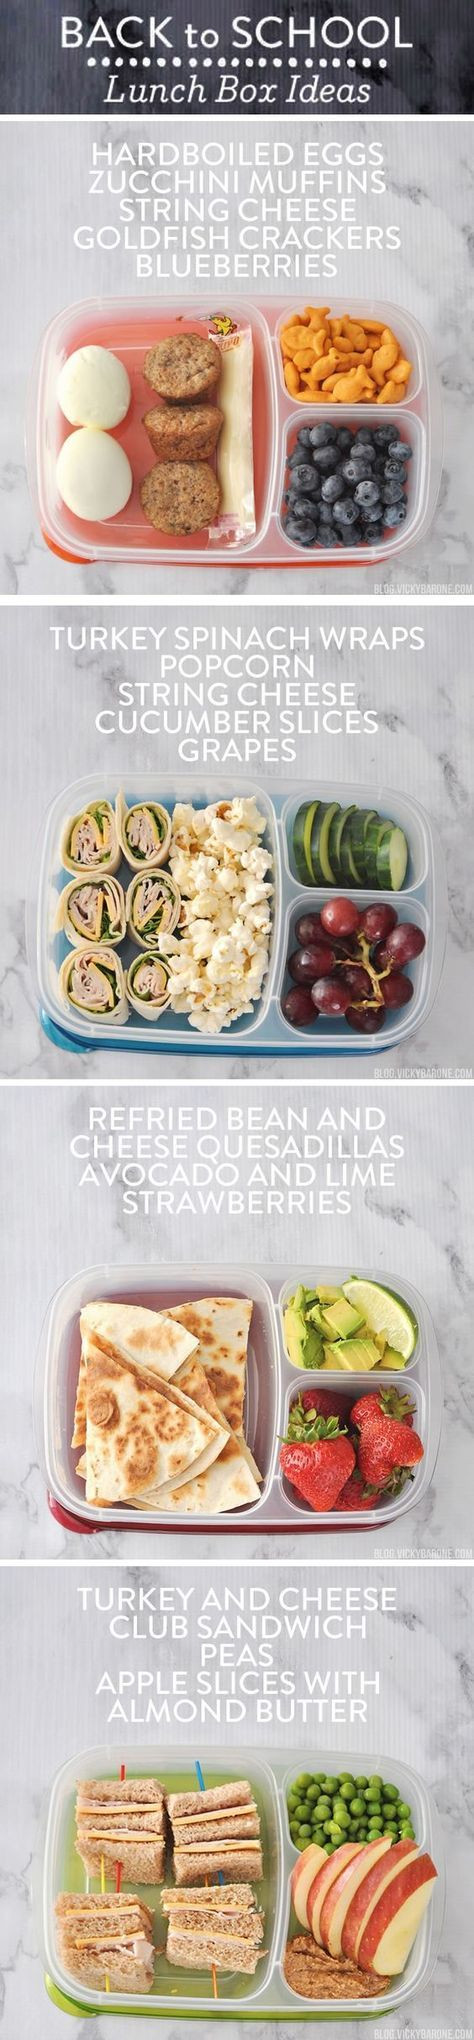 Reddit Healthy Snacks  1000 ideas about Cold School Lunches on Pinterest